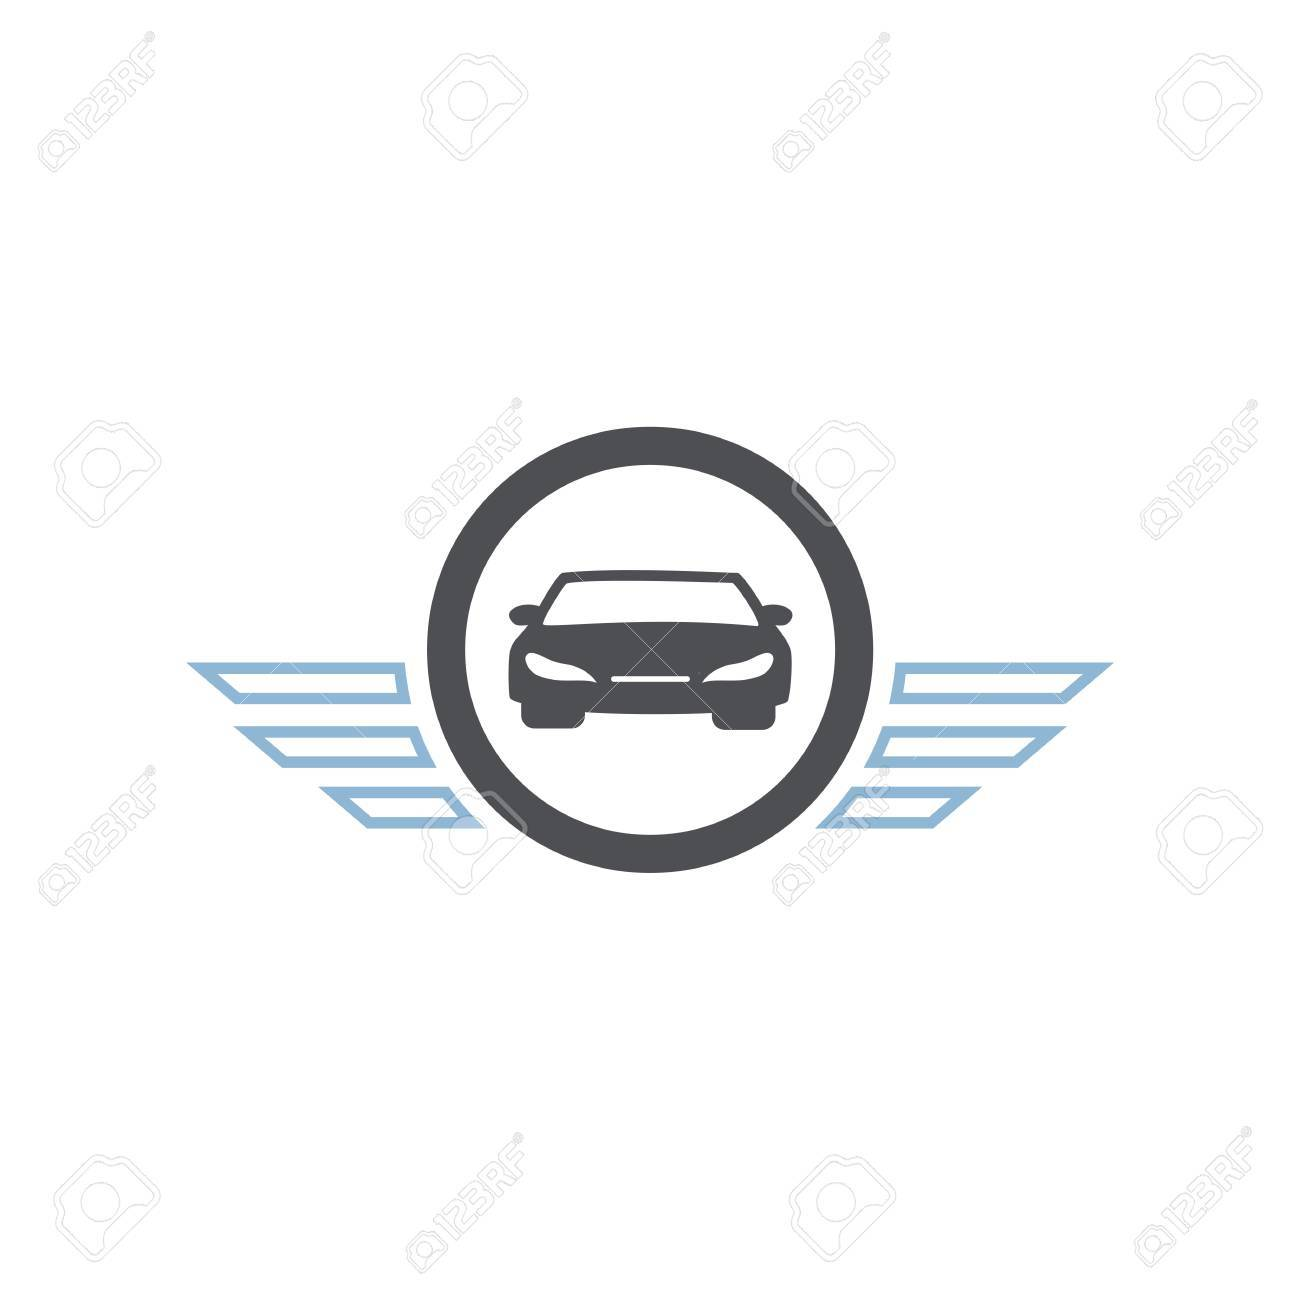 Icon car symbol wings deisgn vector royalty free cliparts vectors icon car symbol wings deisgn vector stock vector 57939983 biocorpaavc Choice Image